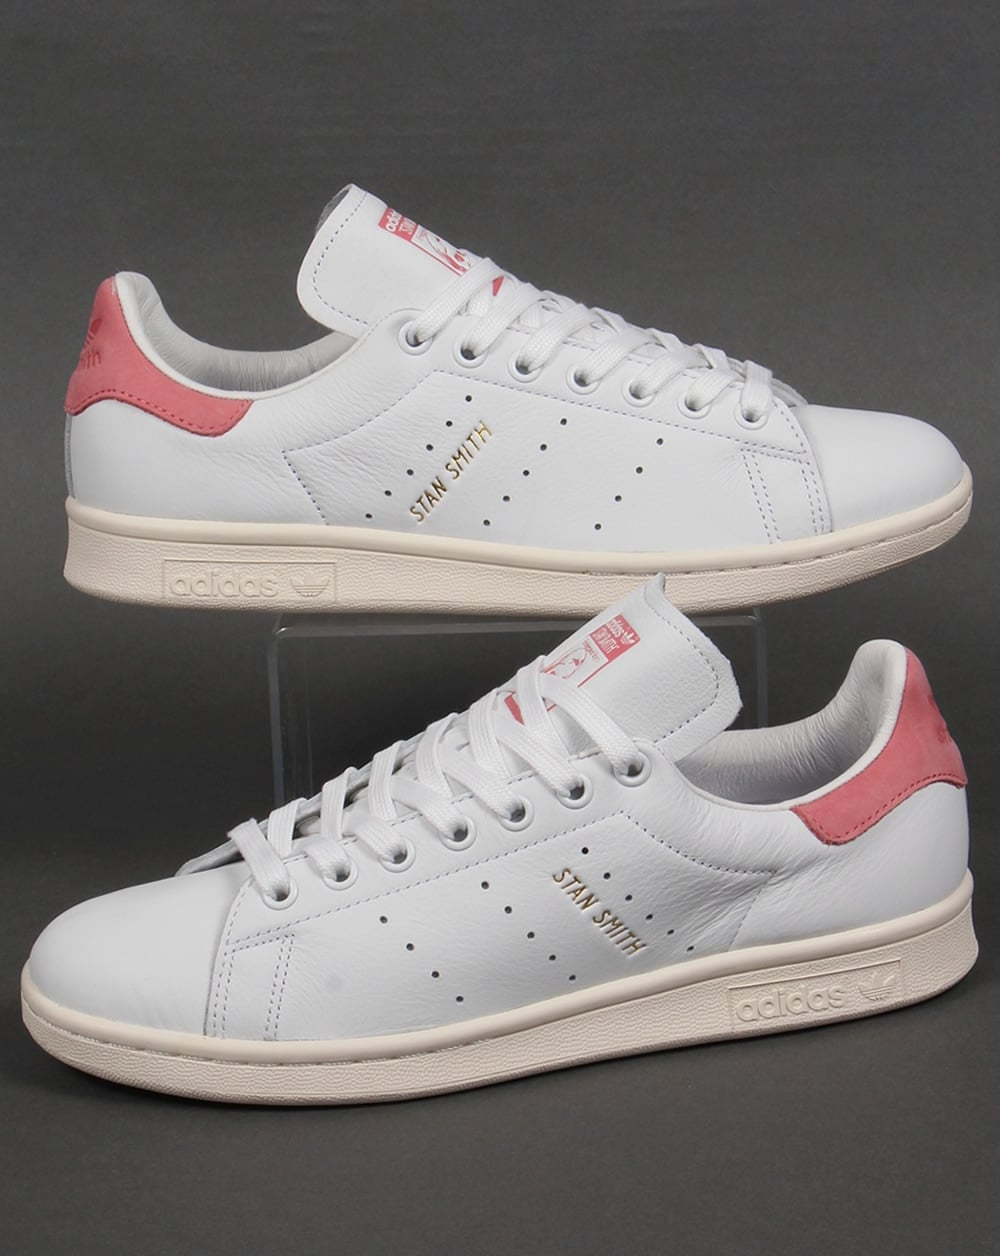 Stan Smith Shoes Pink